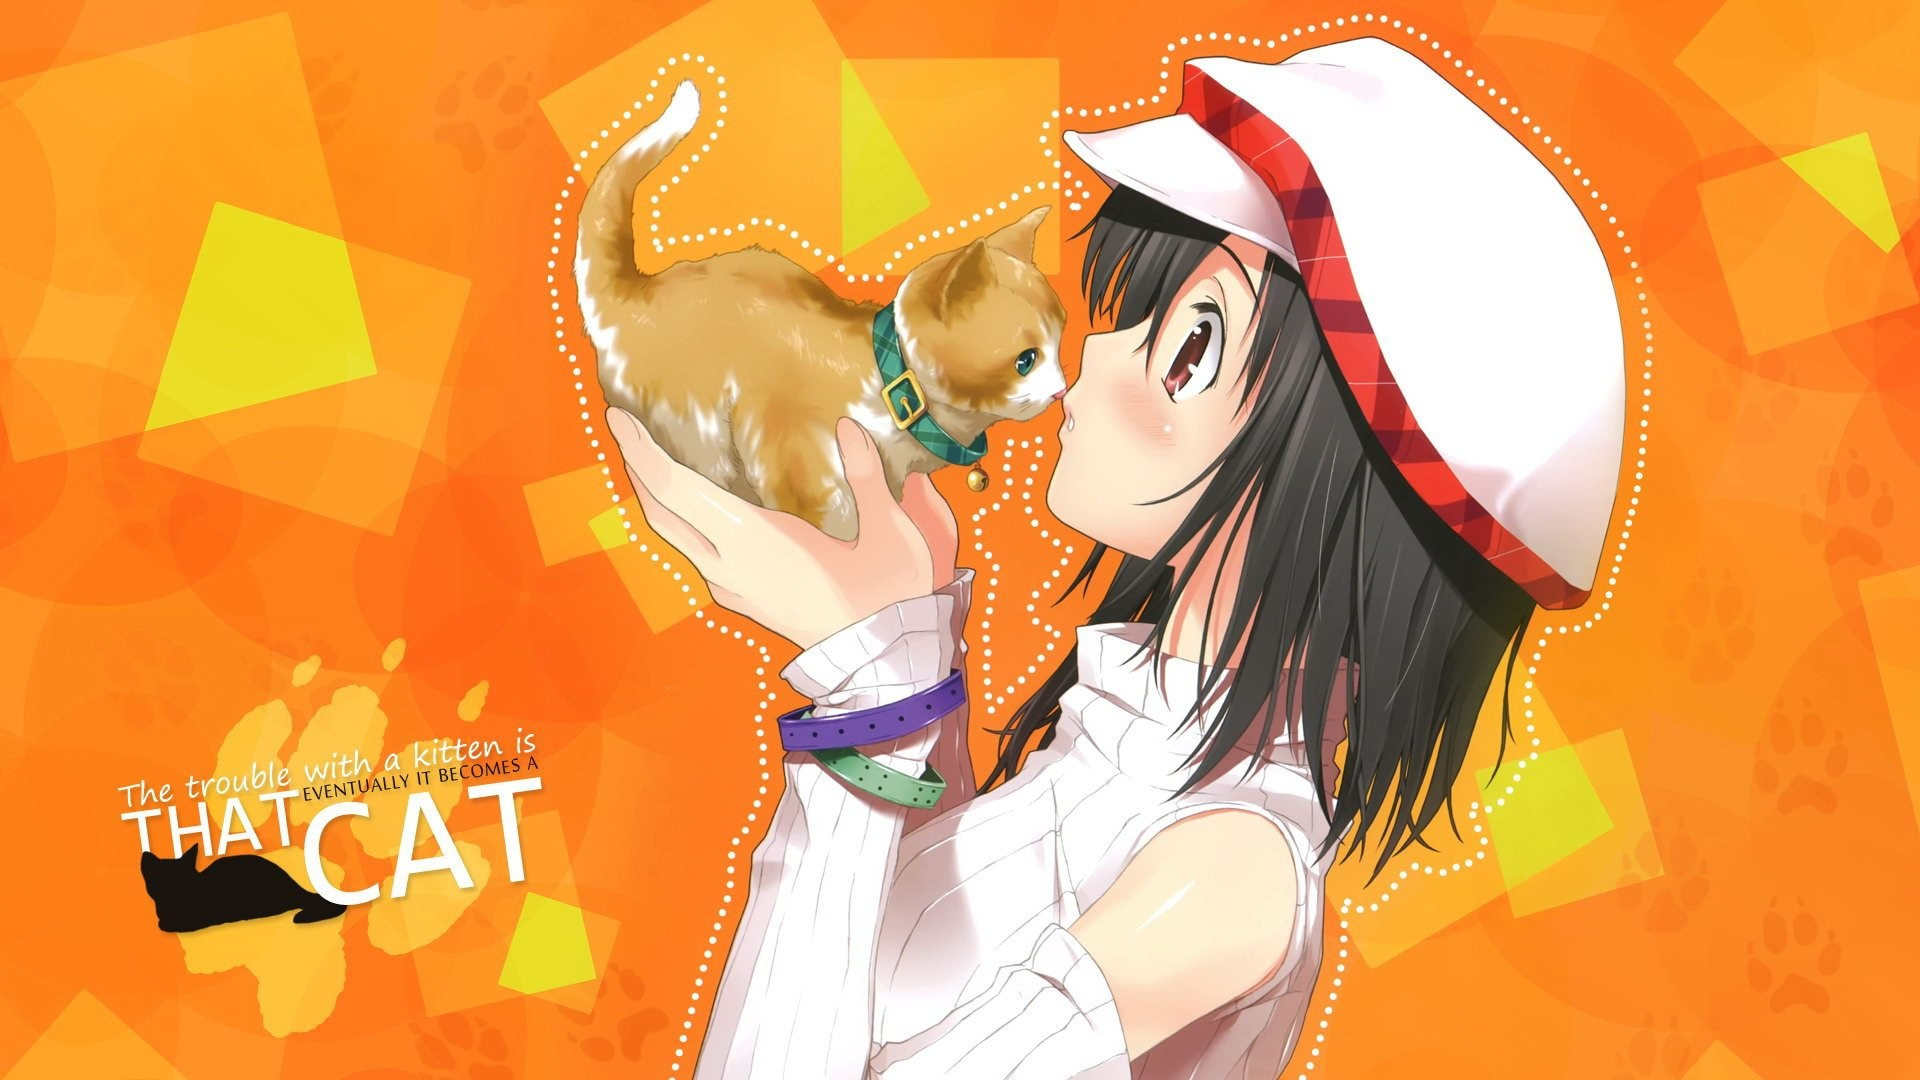 Anime Girl With Cat 817118 …